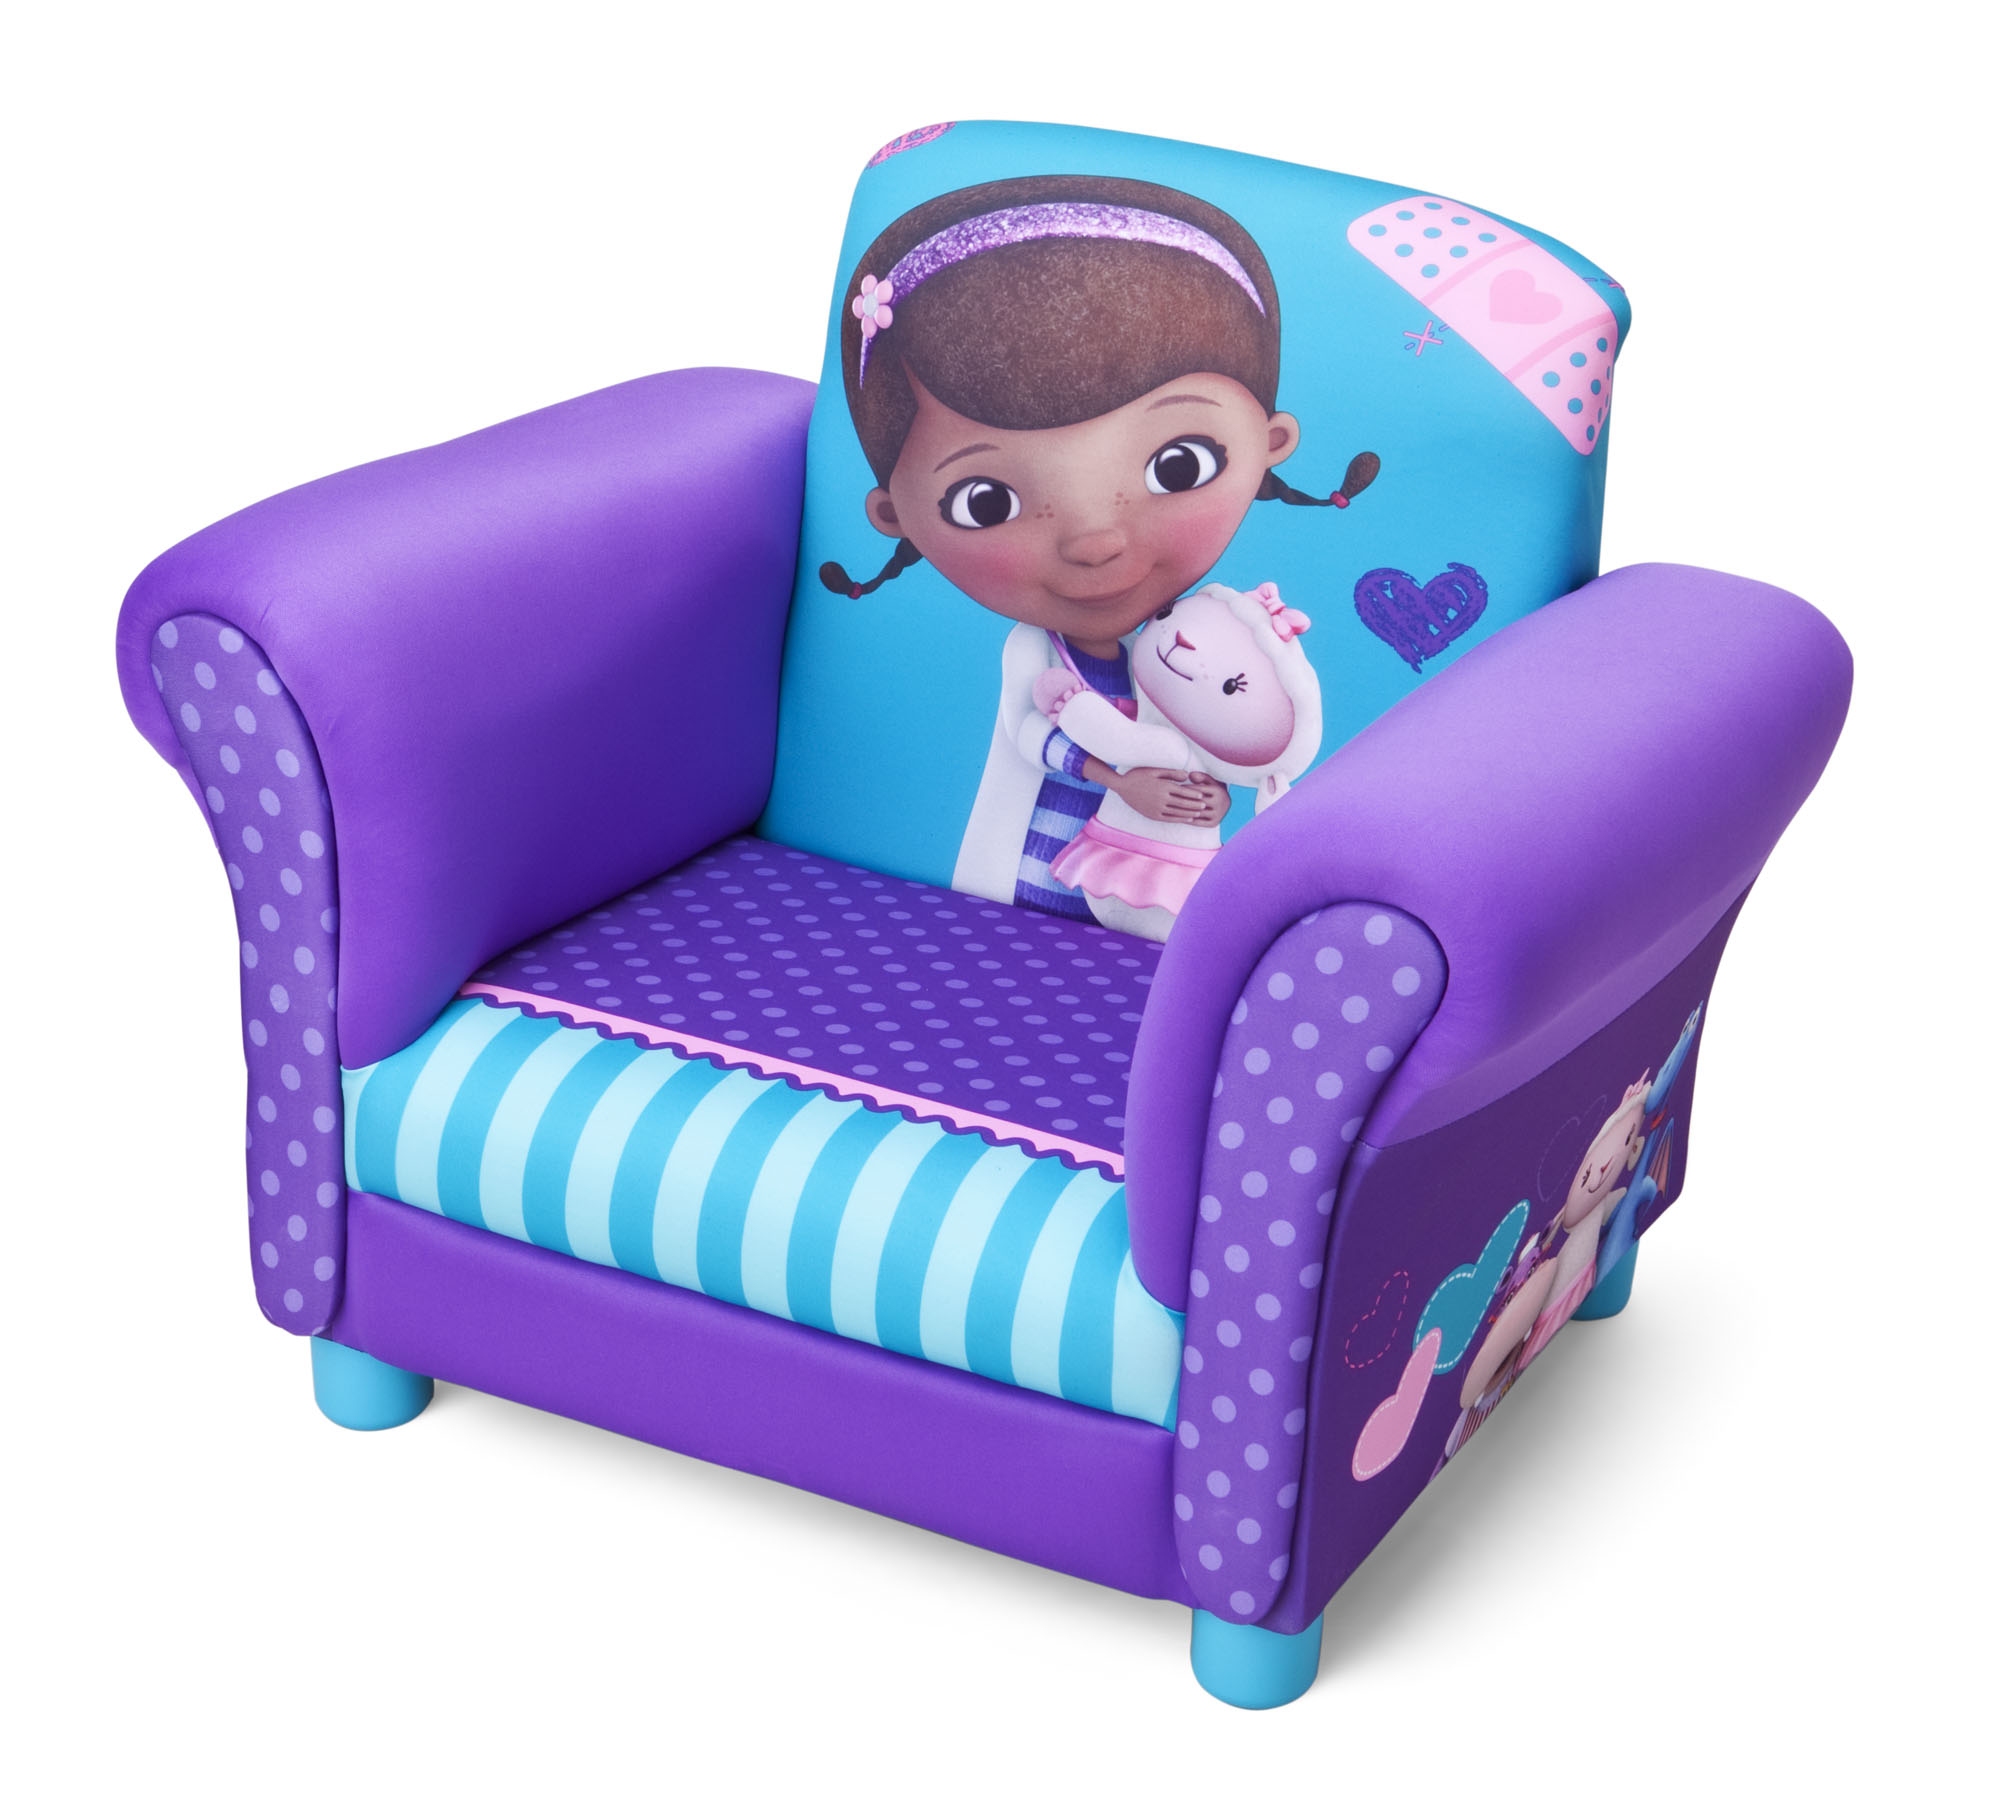 doc mcstuffins chair smyths fold up chairs asda upholstered the toy book